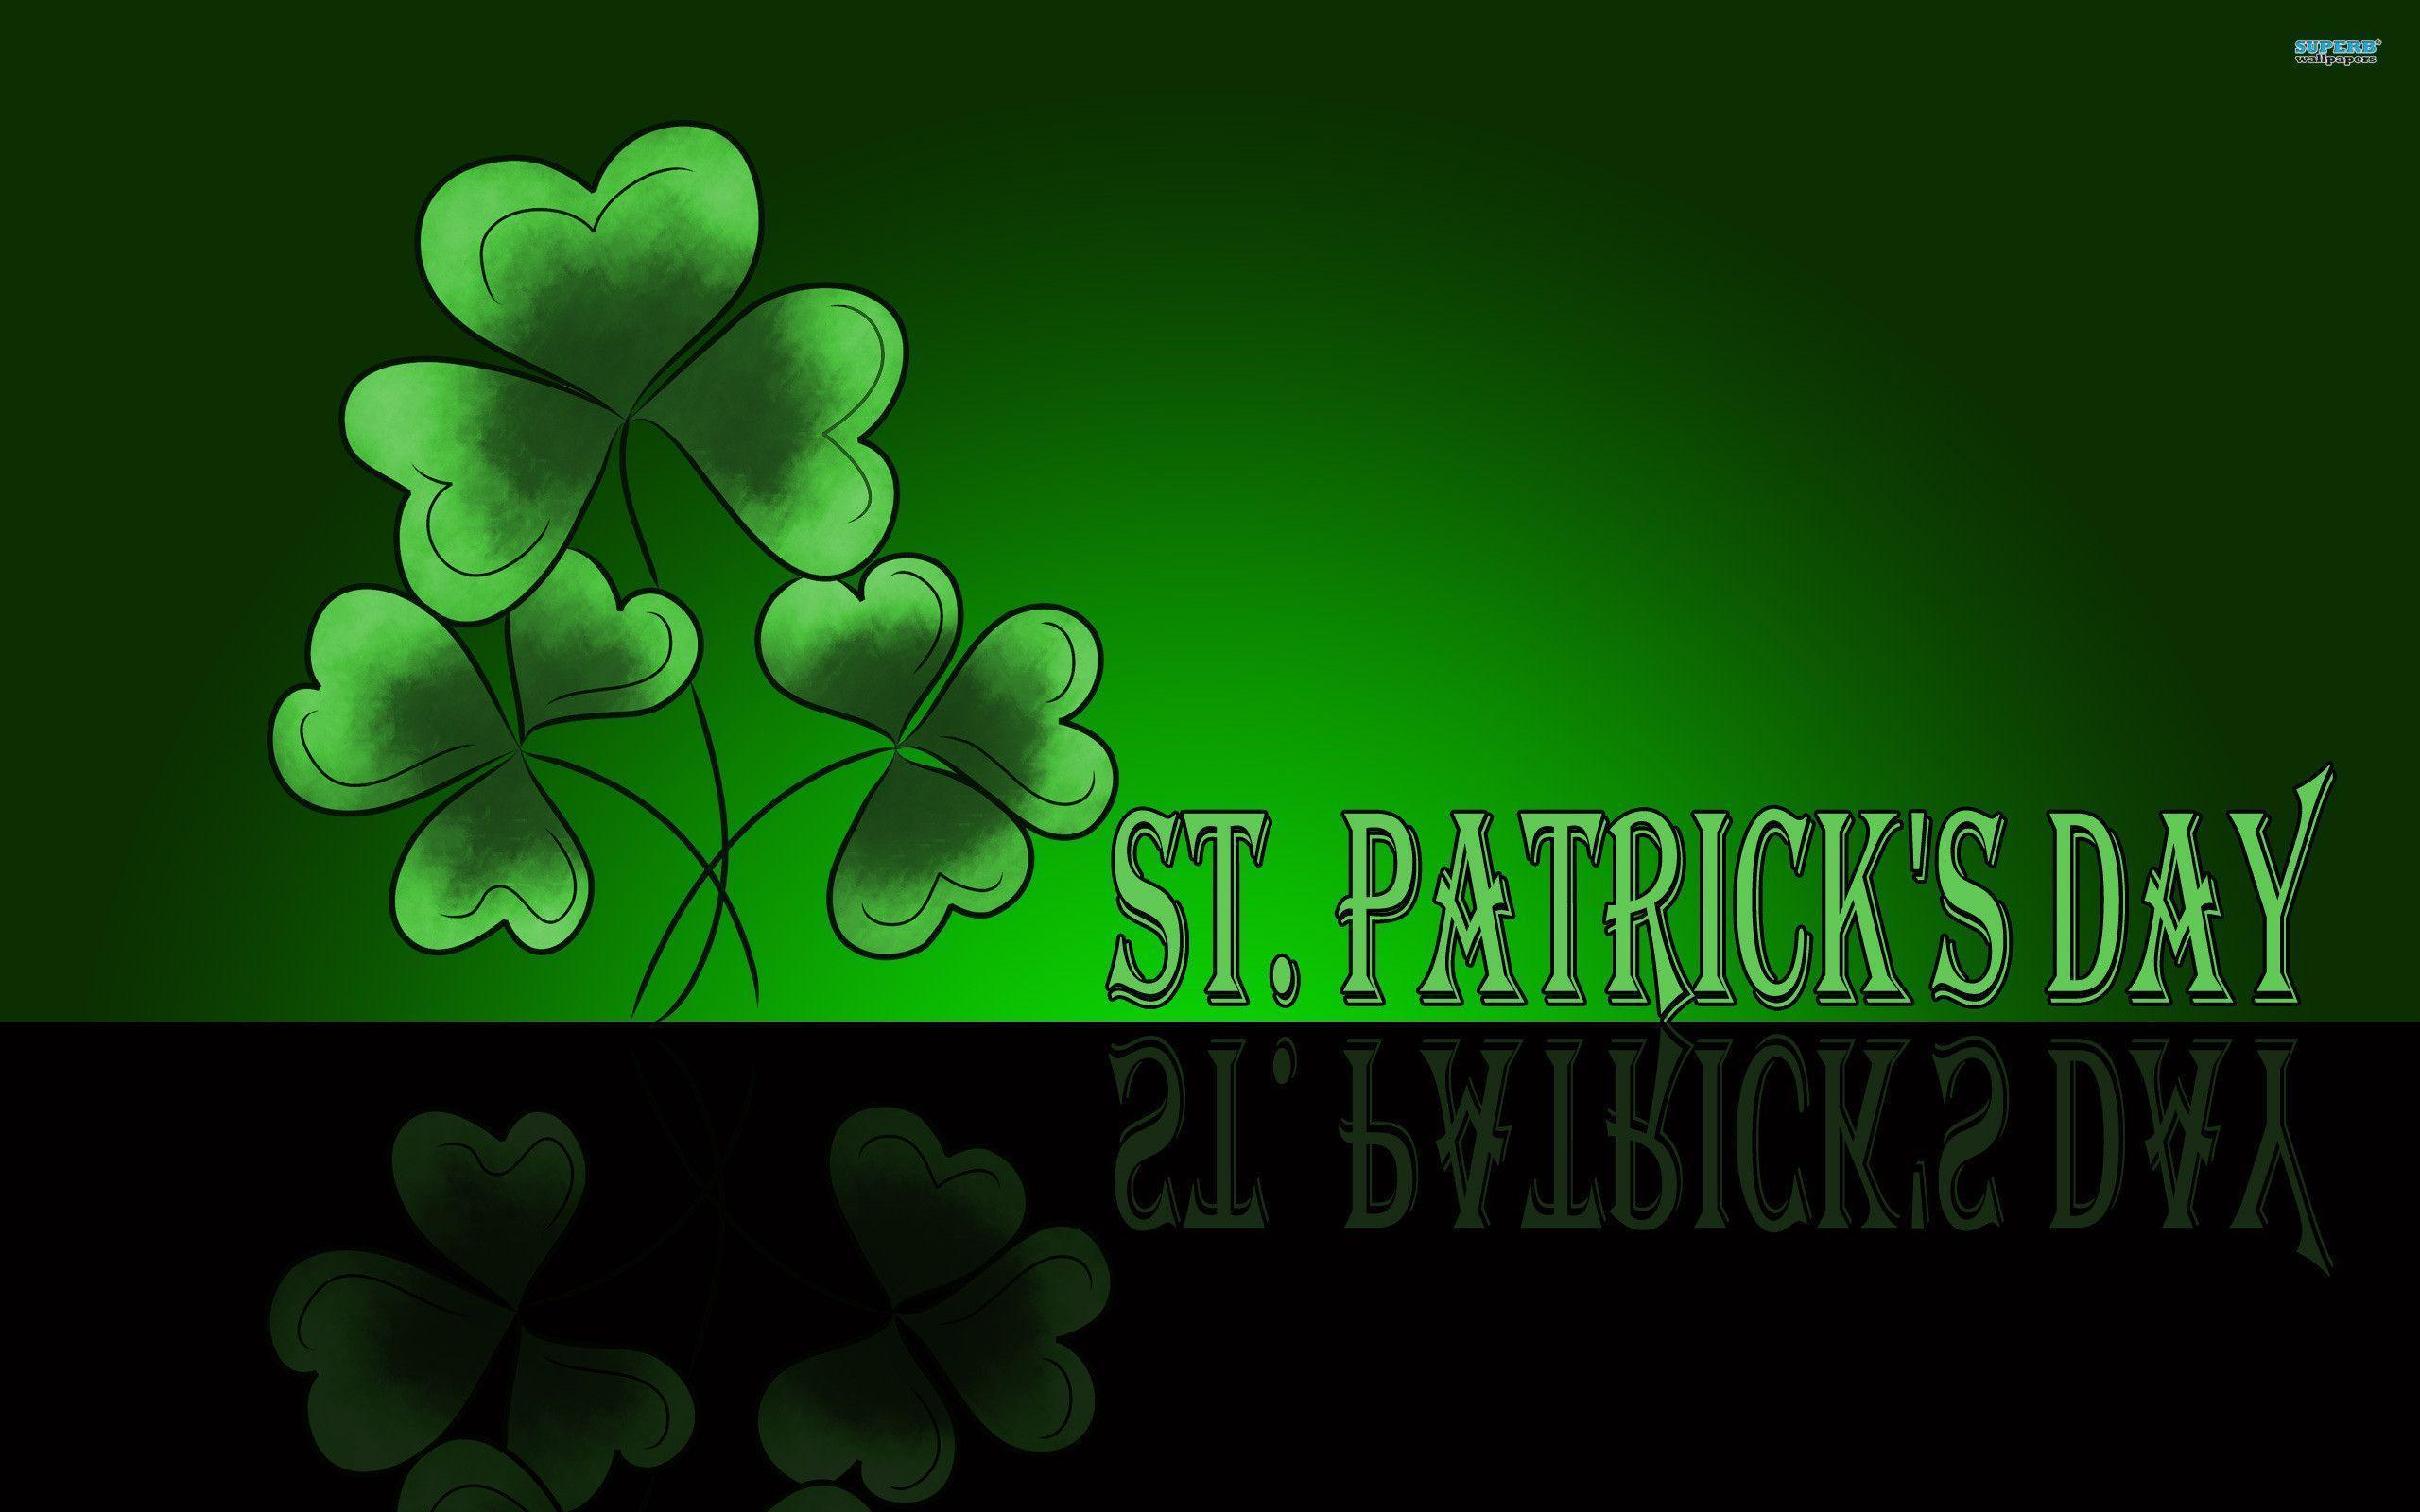 Happy Saint Patricks Day Design Ideas ~ Saint Patricks Day Desktop